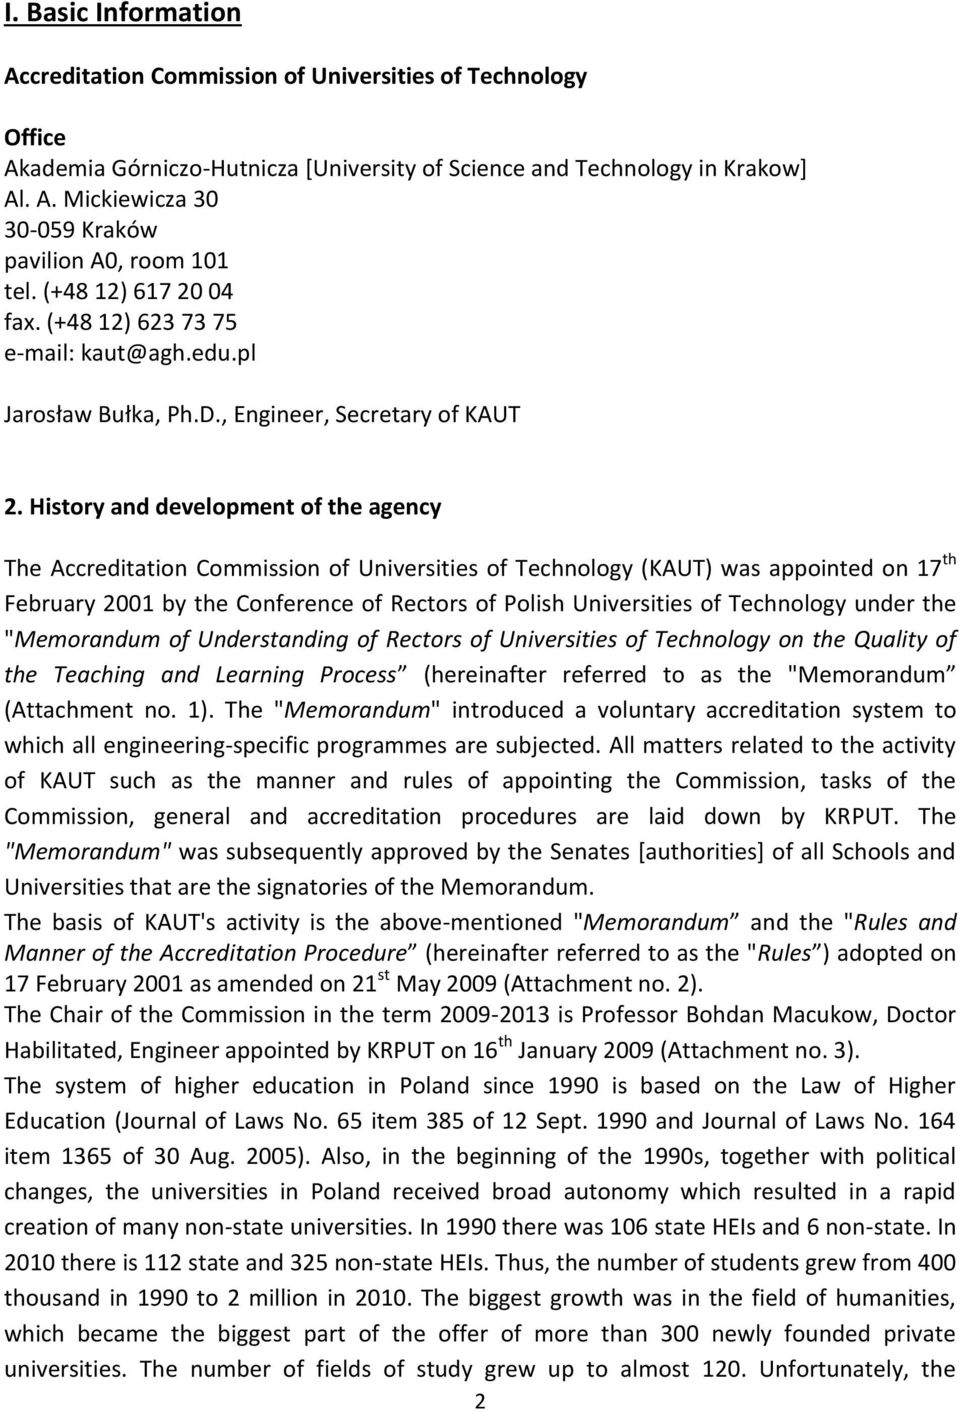 History and development of the agency The Accreditation Commission of Universities of Technology (KAUT) was appointed on 17 th February 2001 by the Conference of Rectors of Polish Universities of